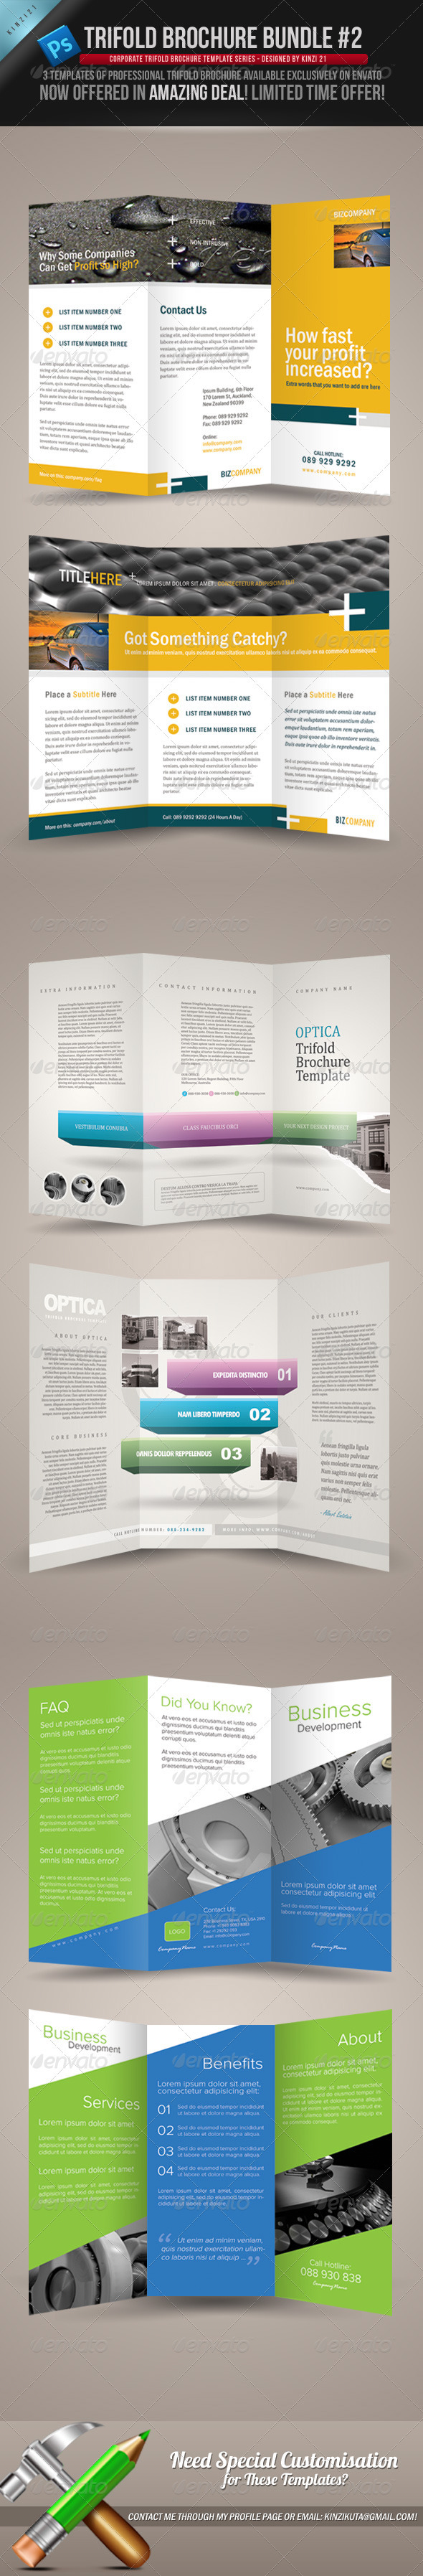 Trifold Brochure Bundle 02 - Corporate Brochures